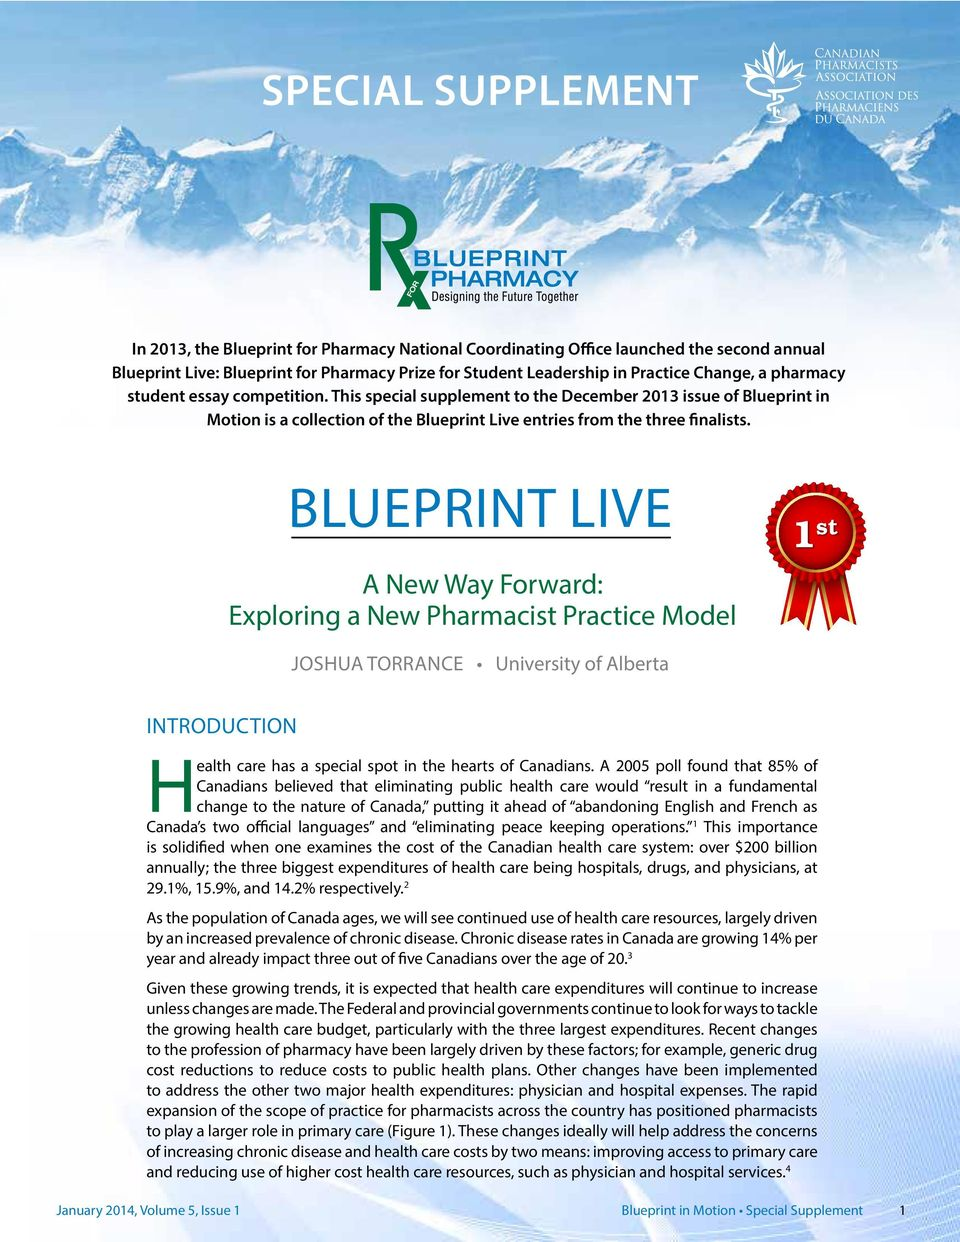 Special supplement a new way forward exploring a new pharmacist blueprint live a new way forward exploring a new pharmacist practice model 1 st joshua malvernweather Choice Image